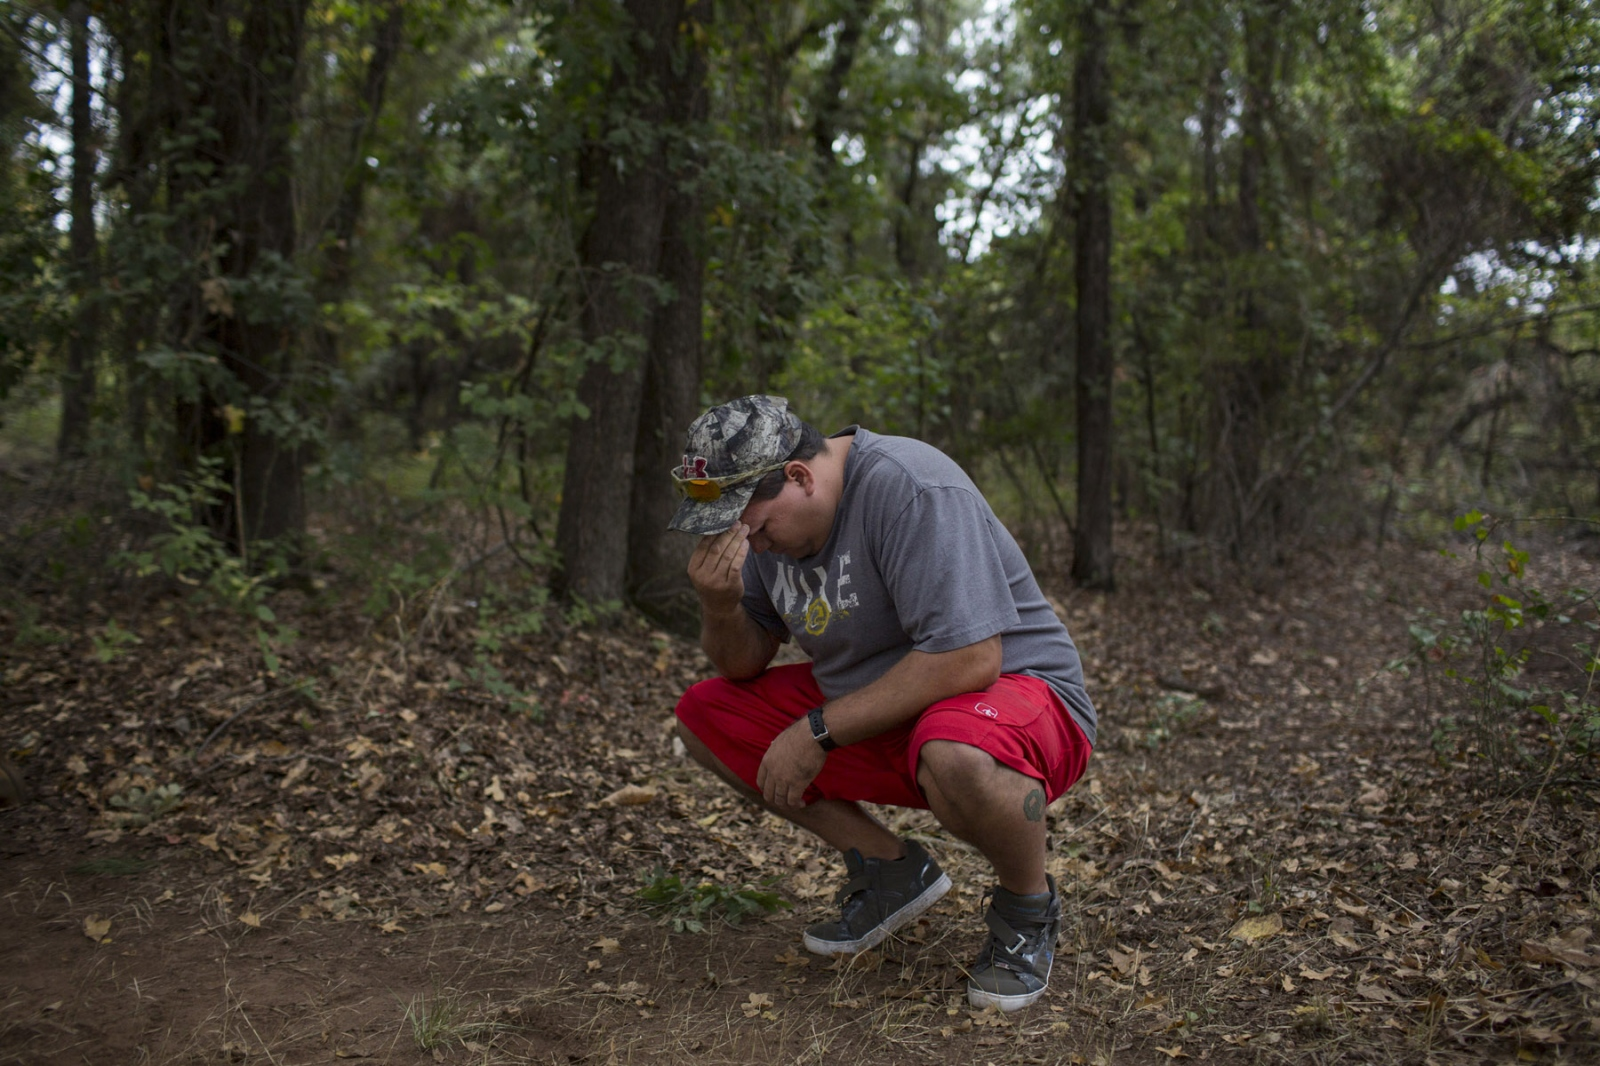 Specialist Michael Sankadota pauses and winces during an intense migraine during the building of a teepee near Anadarko, Oklahoma. 2014. Physical activity often brings on intense migraines for Specialist Sankadota, 30, with the migraines being rated from 1-10. Mr. Sankadota was deemed 100% disabled by the Veterans Affairs as a result of the traumatic brain injuries he has sustained whilst on tour in Iraq.